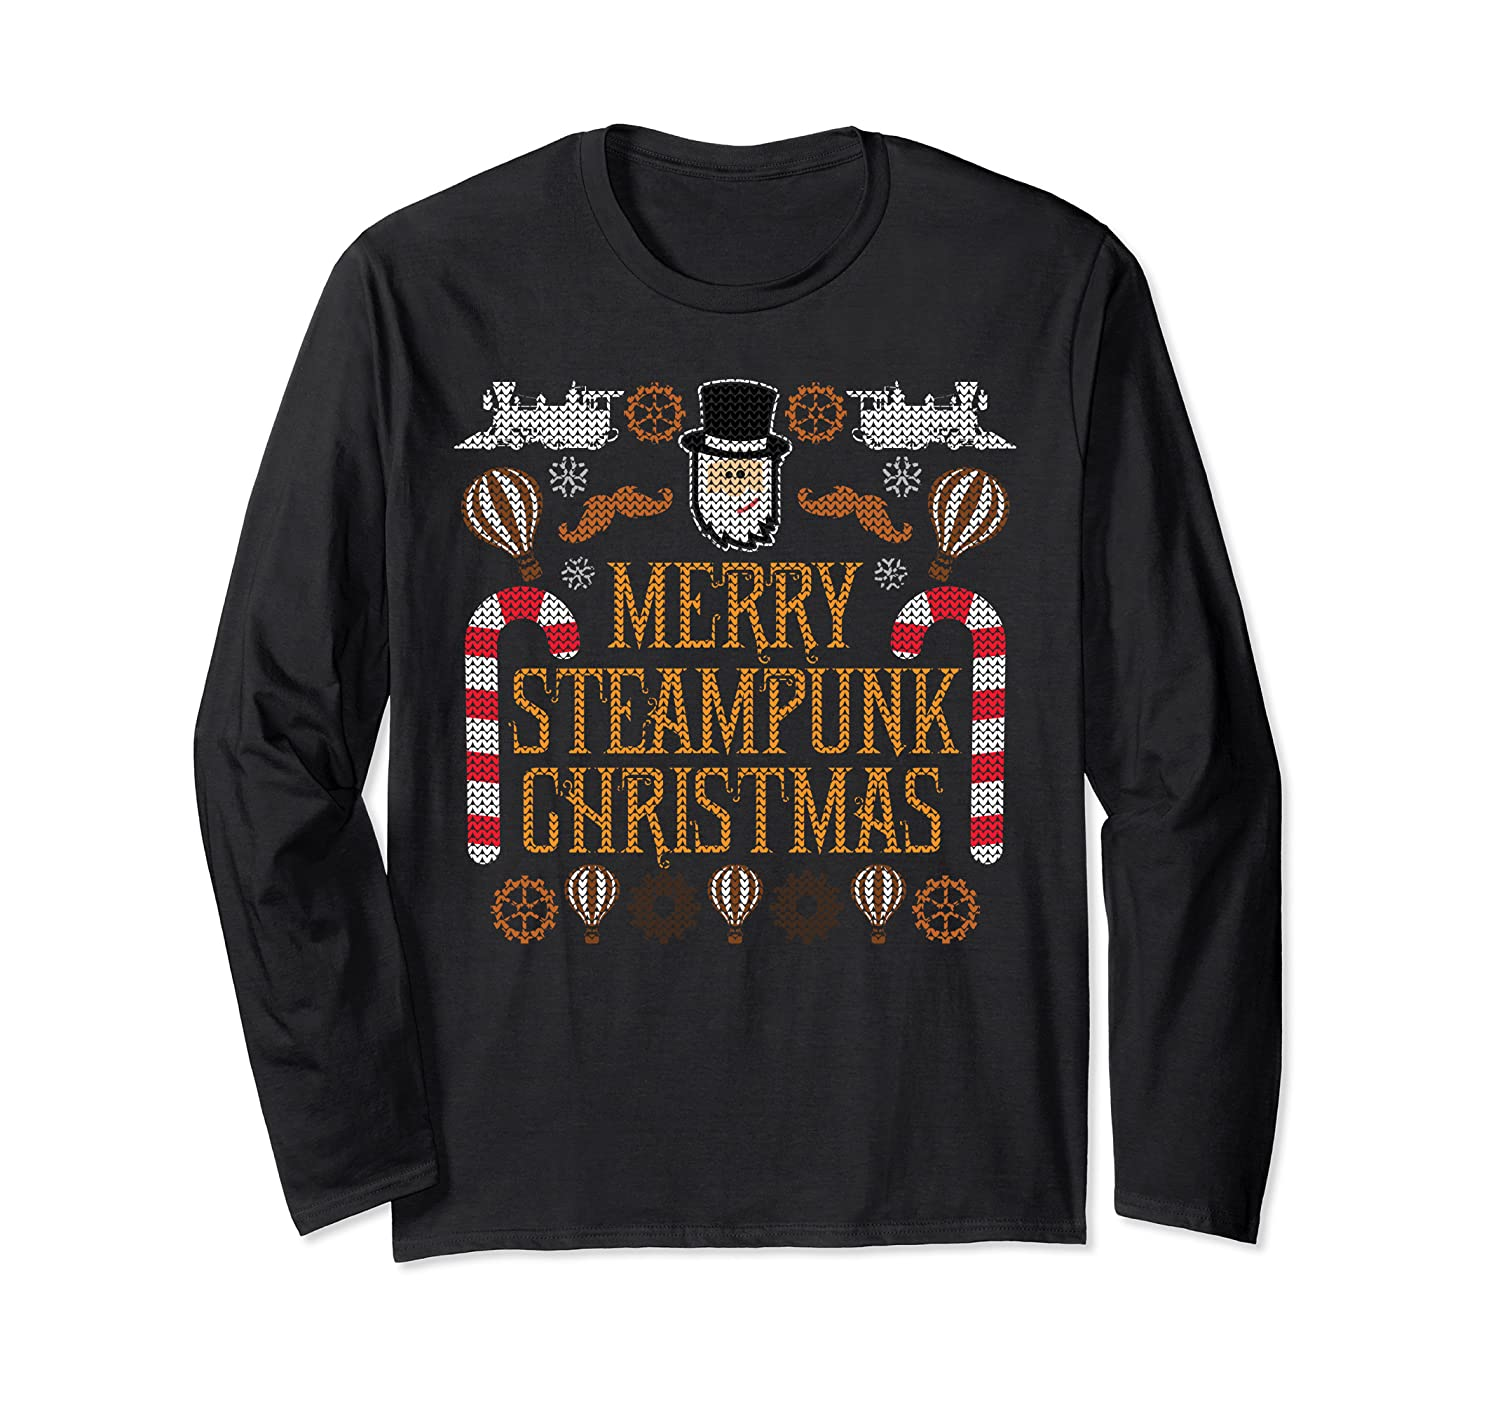 Merry Steampunk Christmas T-Shirt Ugly Christmas Sweater